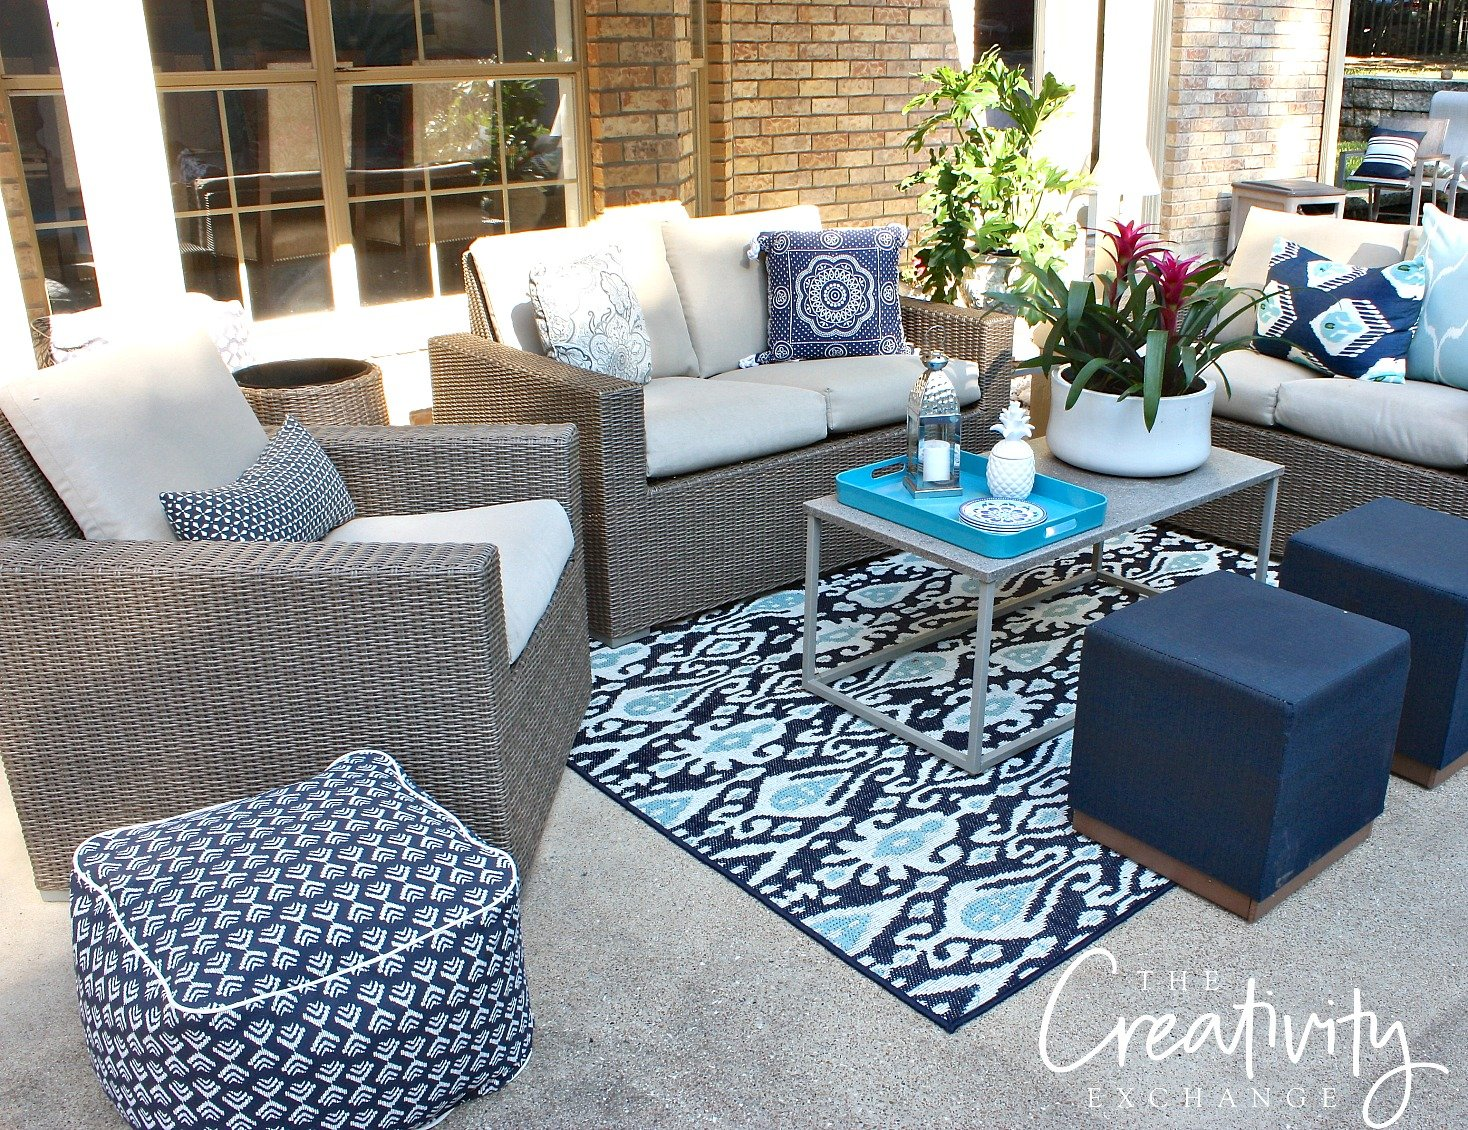 Patio refresh tips and deals. The Creativity Exchange